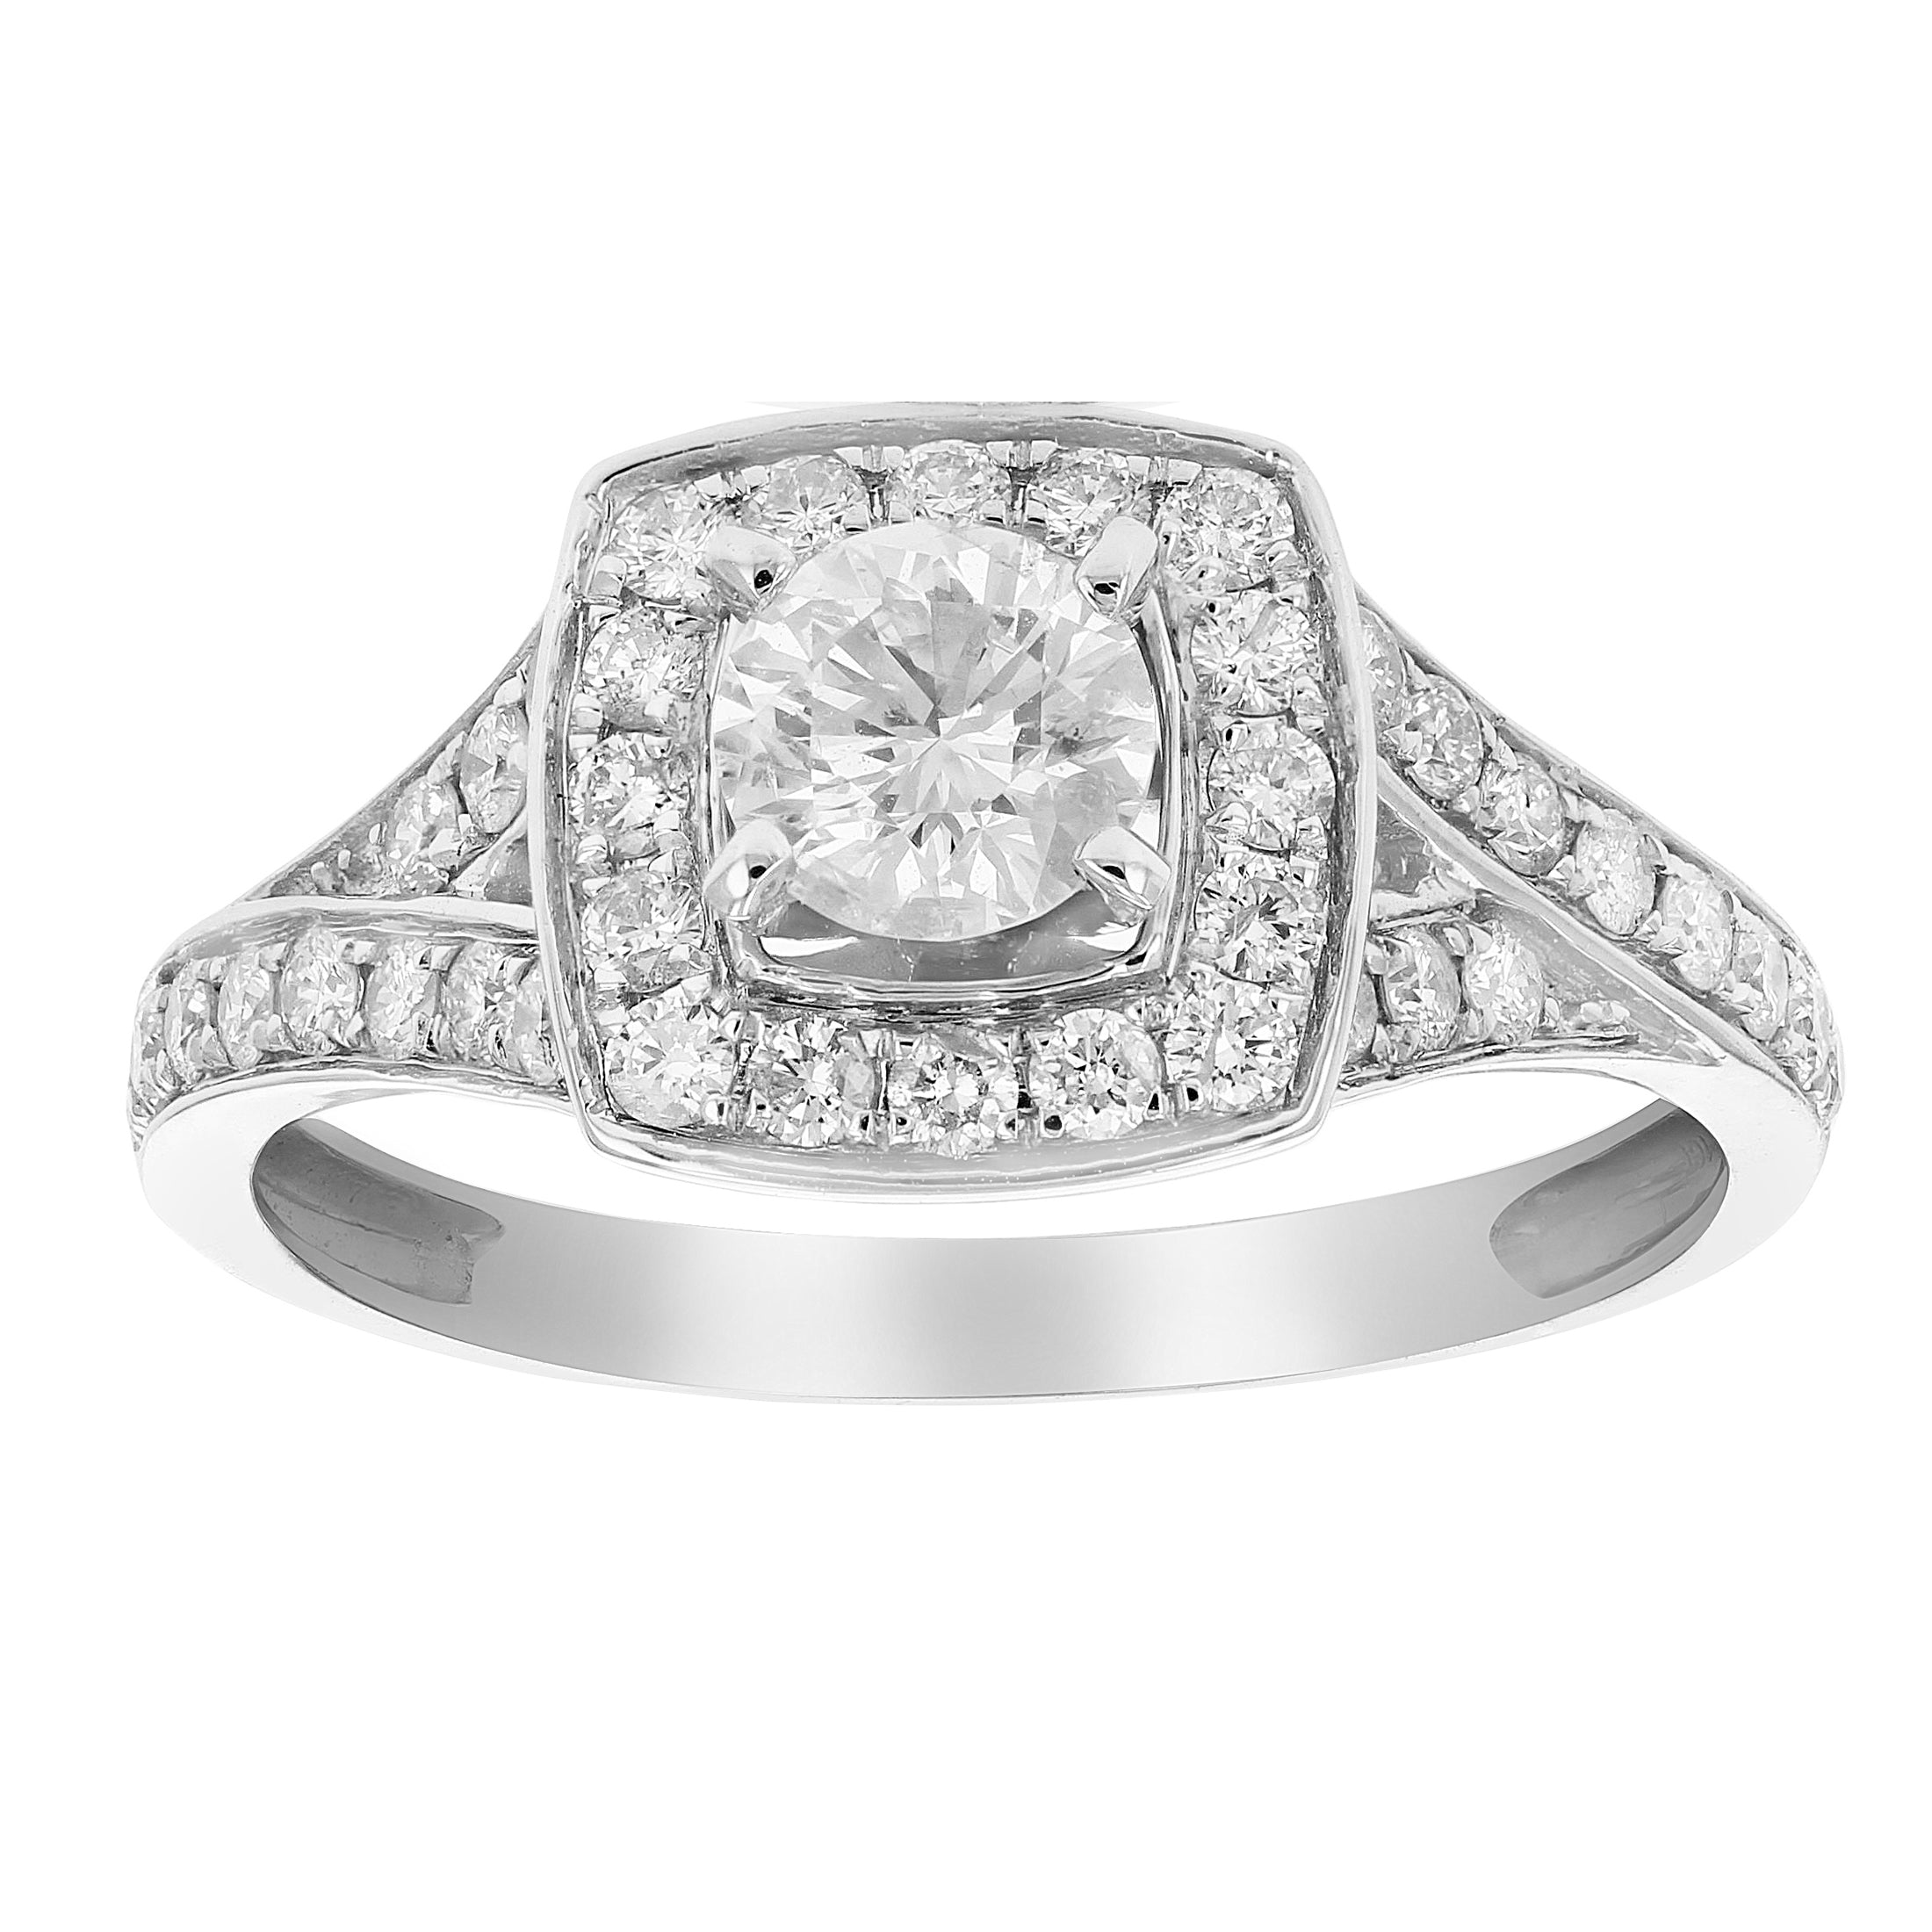 1 CT Diamond Halo 4 Prong Set Wedding Engagement Ring 14K White